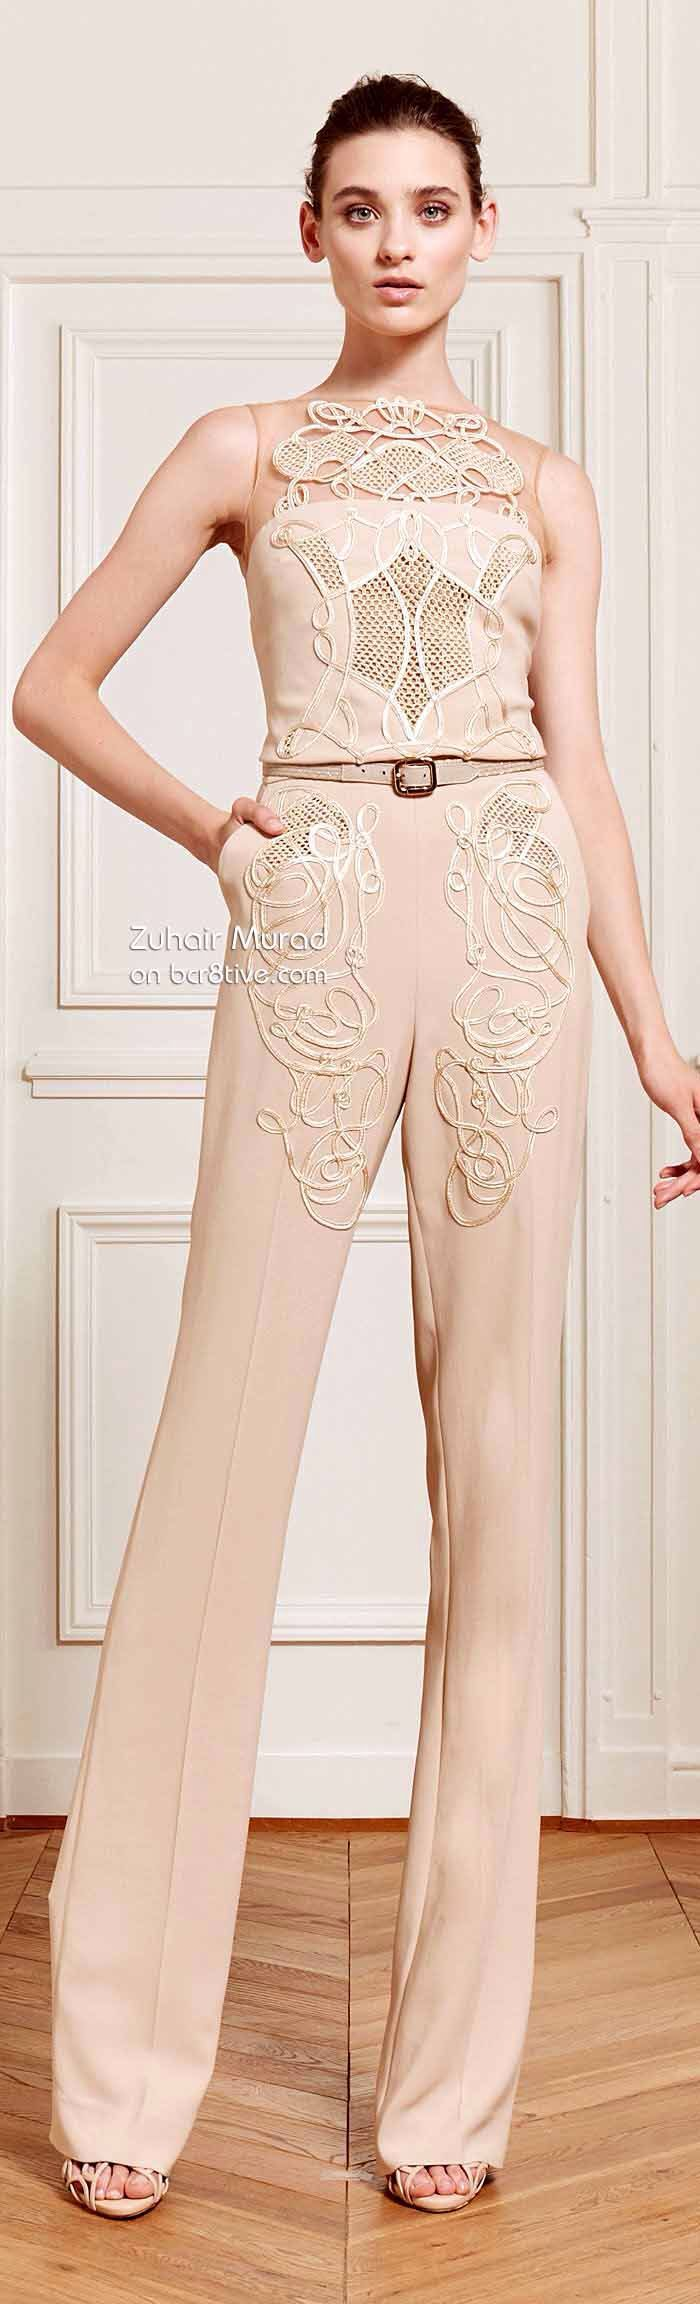 Zuhair Murad Resort Collection